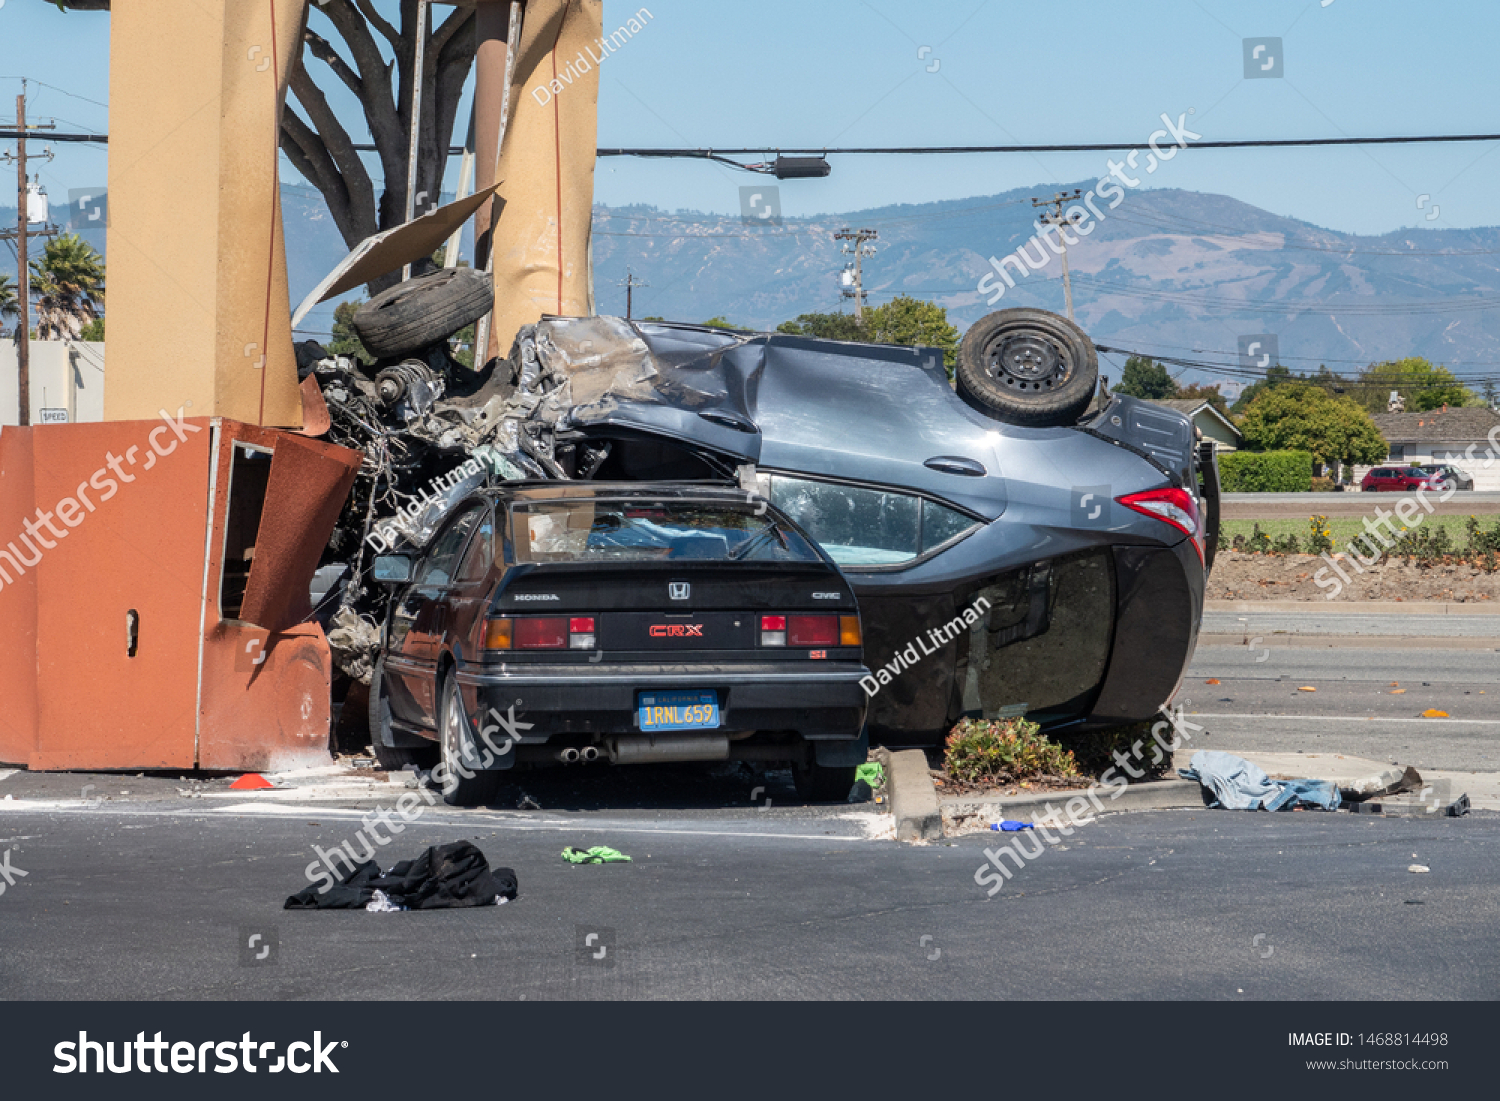 Salinas, California - July 27, 2019: An out of control car lands upside down on top of a parked car.